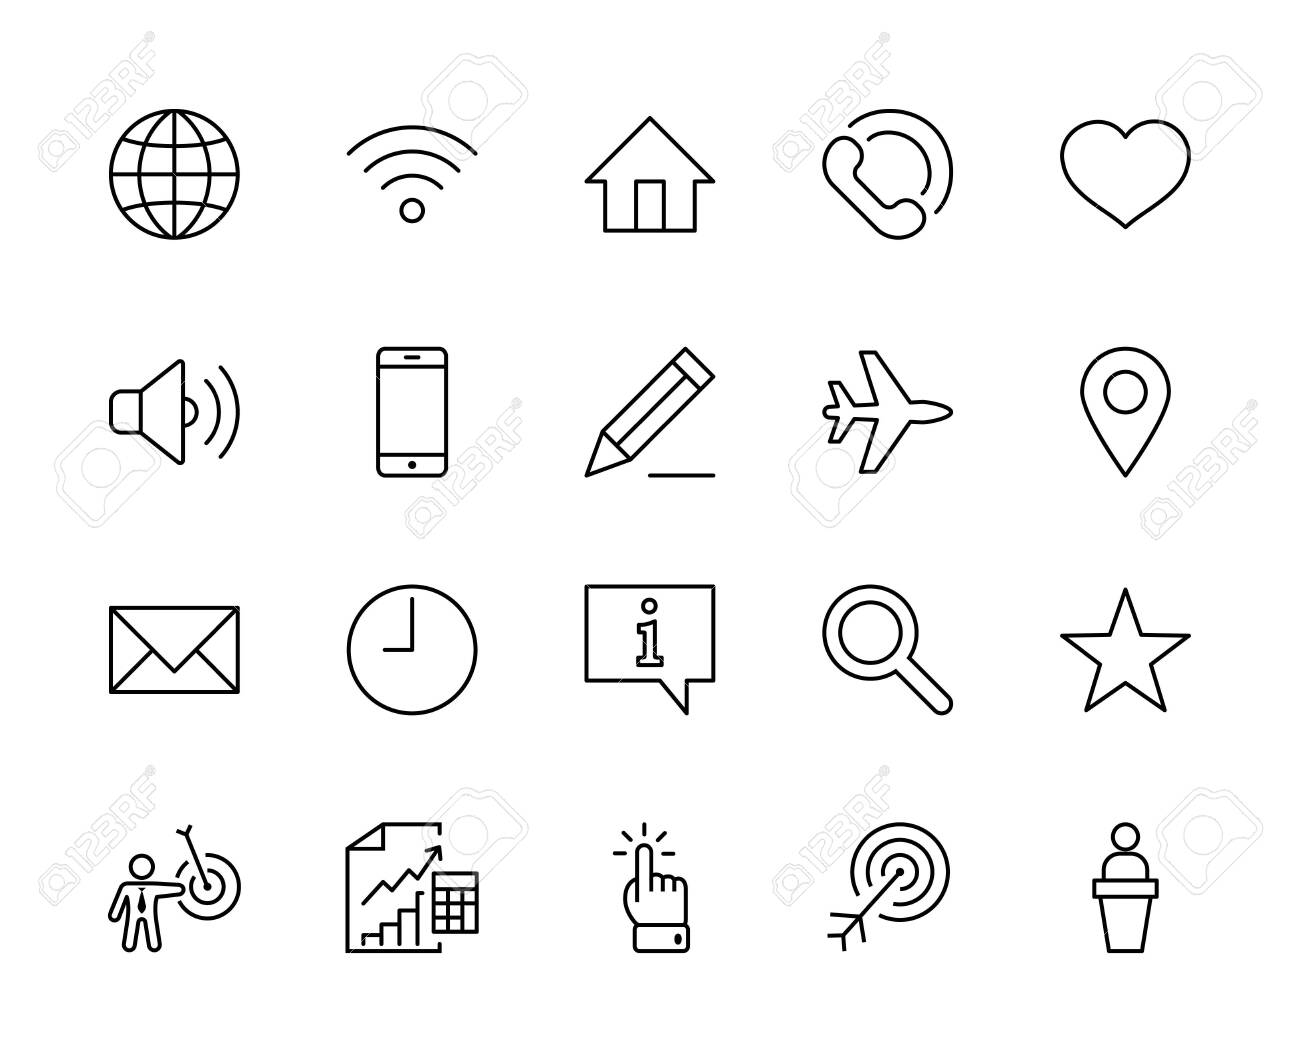 Set of Web Vector Line Icons. Contains such Icons as Globe, Wi-fi, Home, Heart, Phone, Pencil, Time Clock, Star and more. Editable Stroke. 32x32 Pixels - 139458071